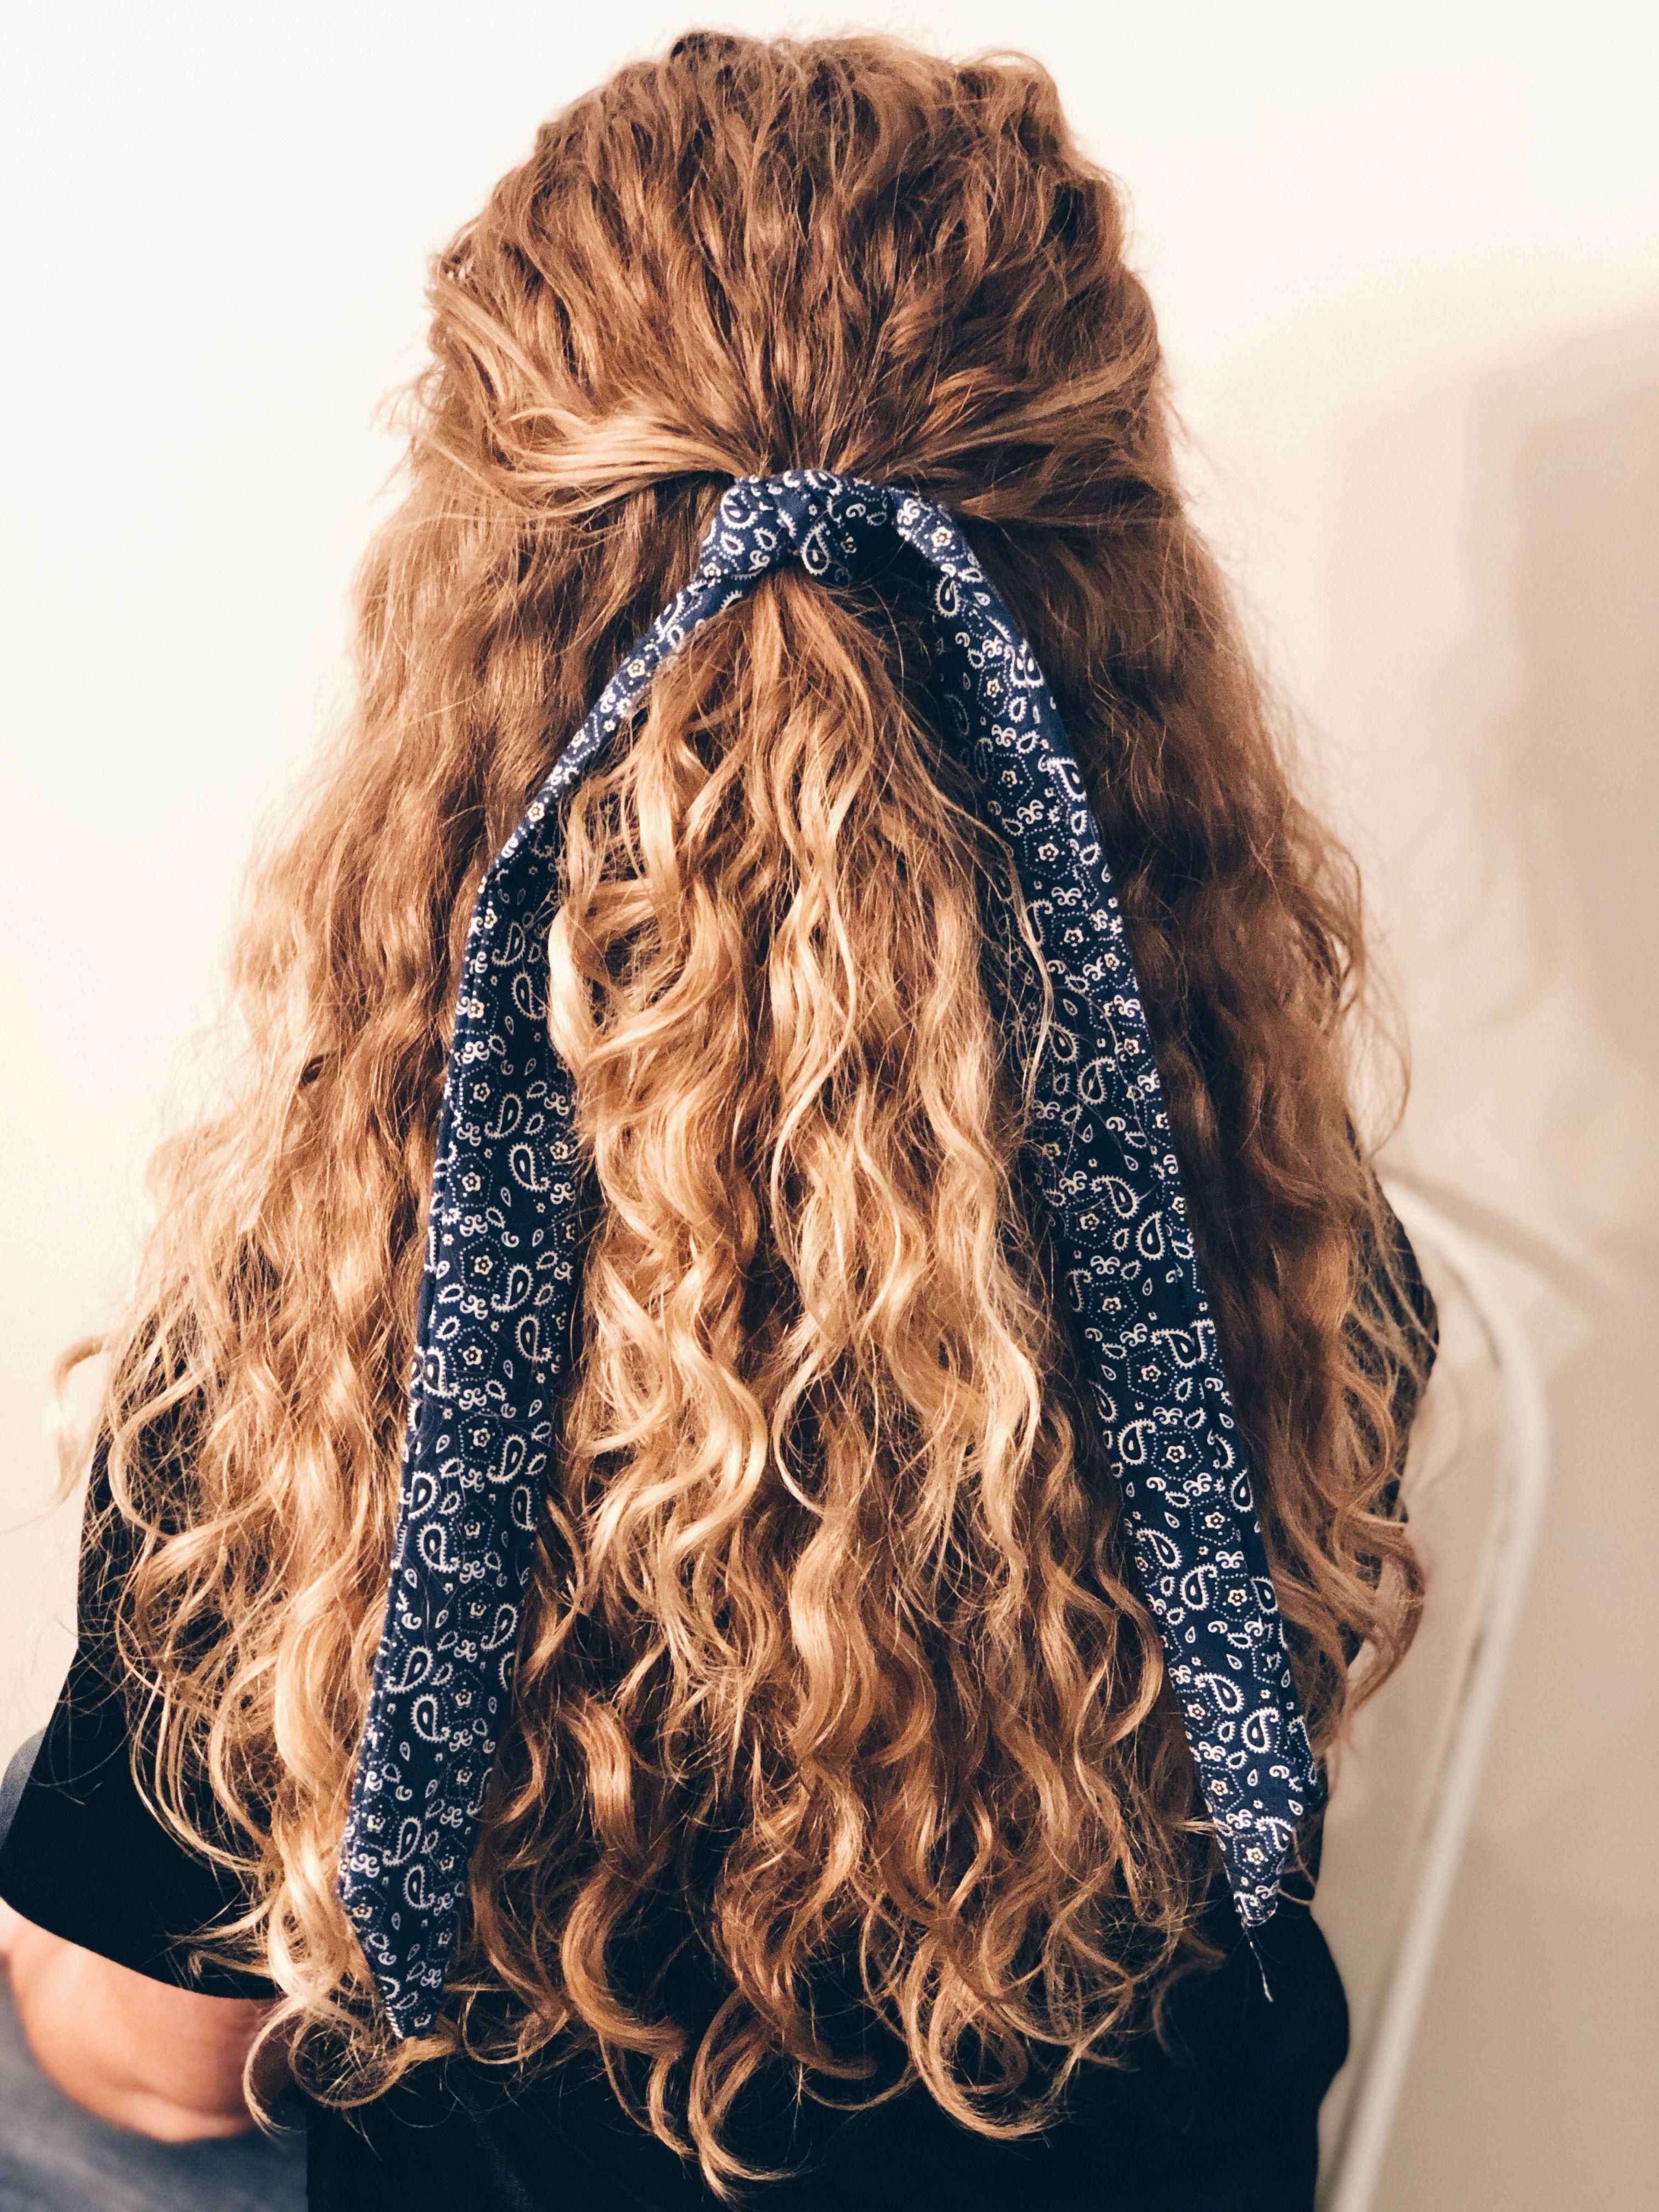 Pin On Long Curly Hair Styles